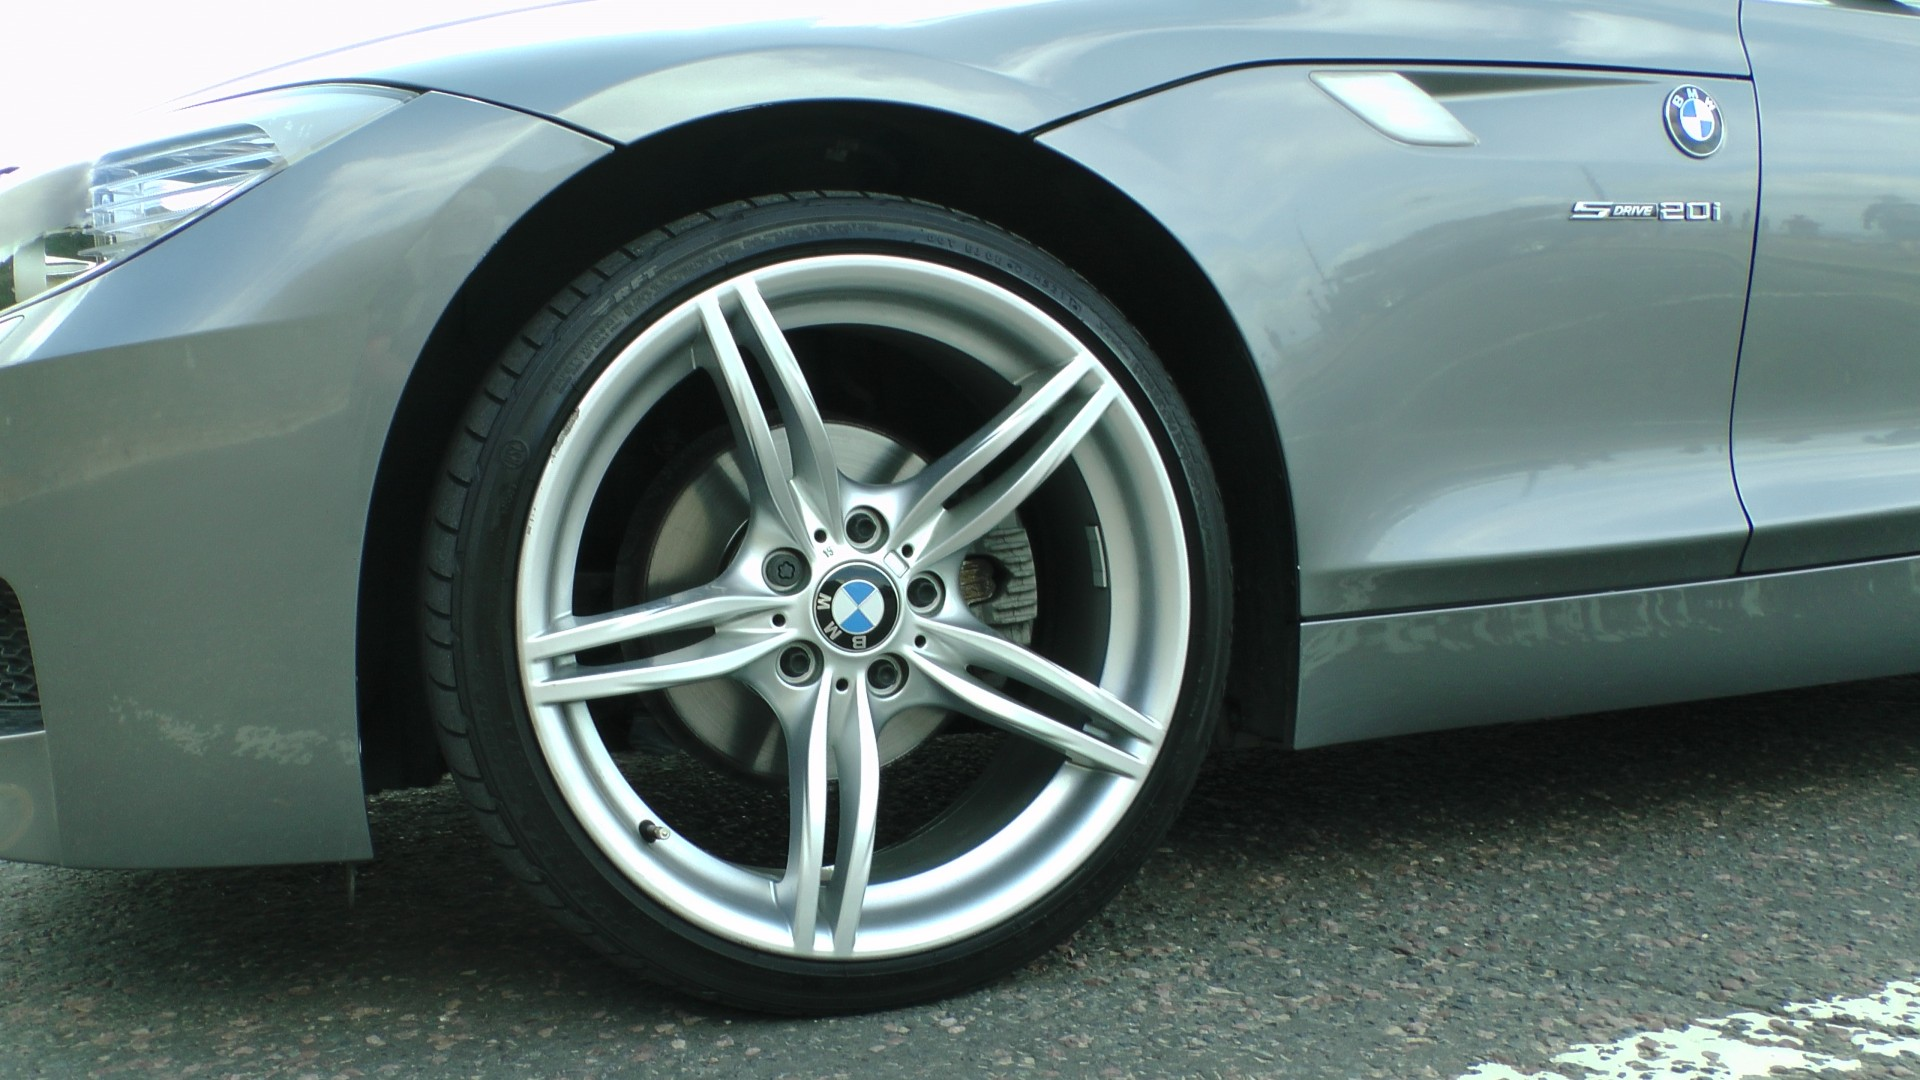 Certified BMW Repair You Can Rely